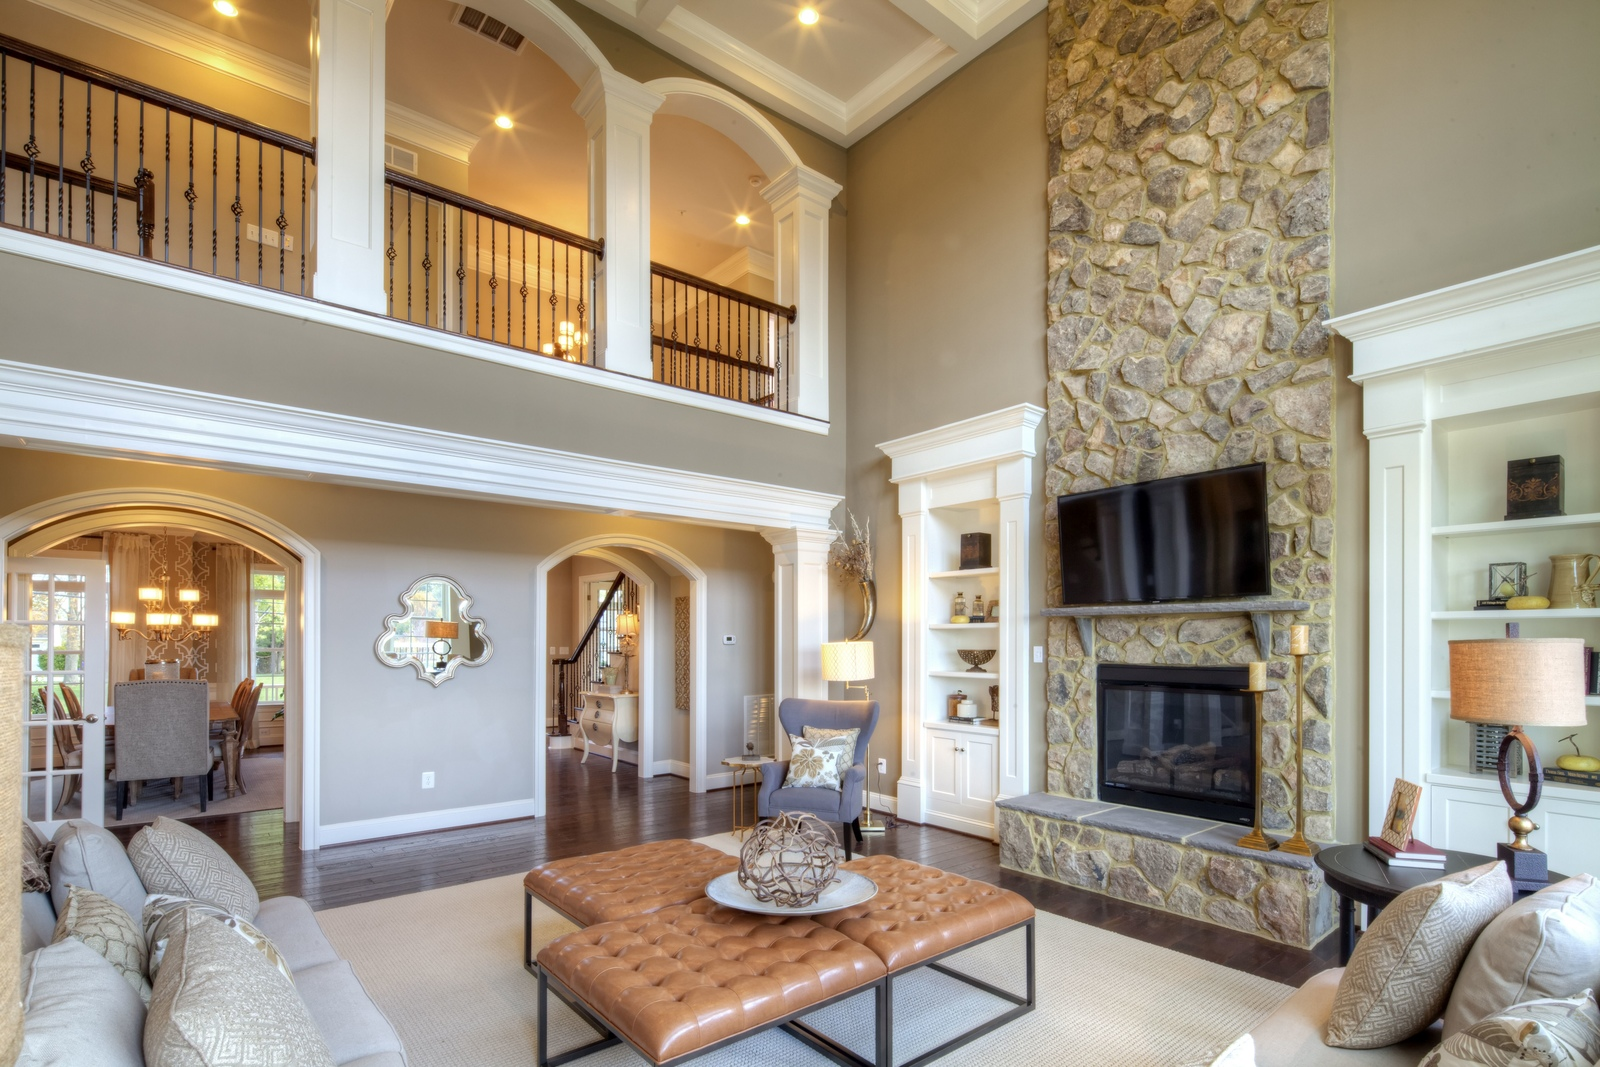 Two story great room offering a floor to ceiling stone fireplace, coffered ceiling, and built in bookcases